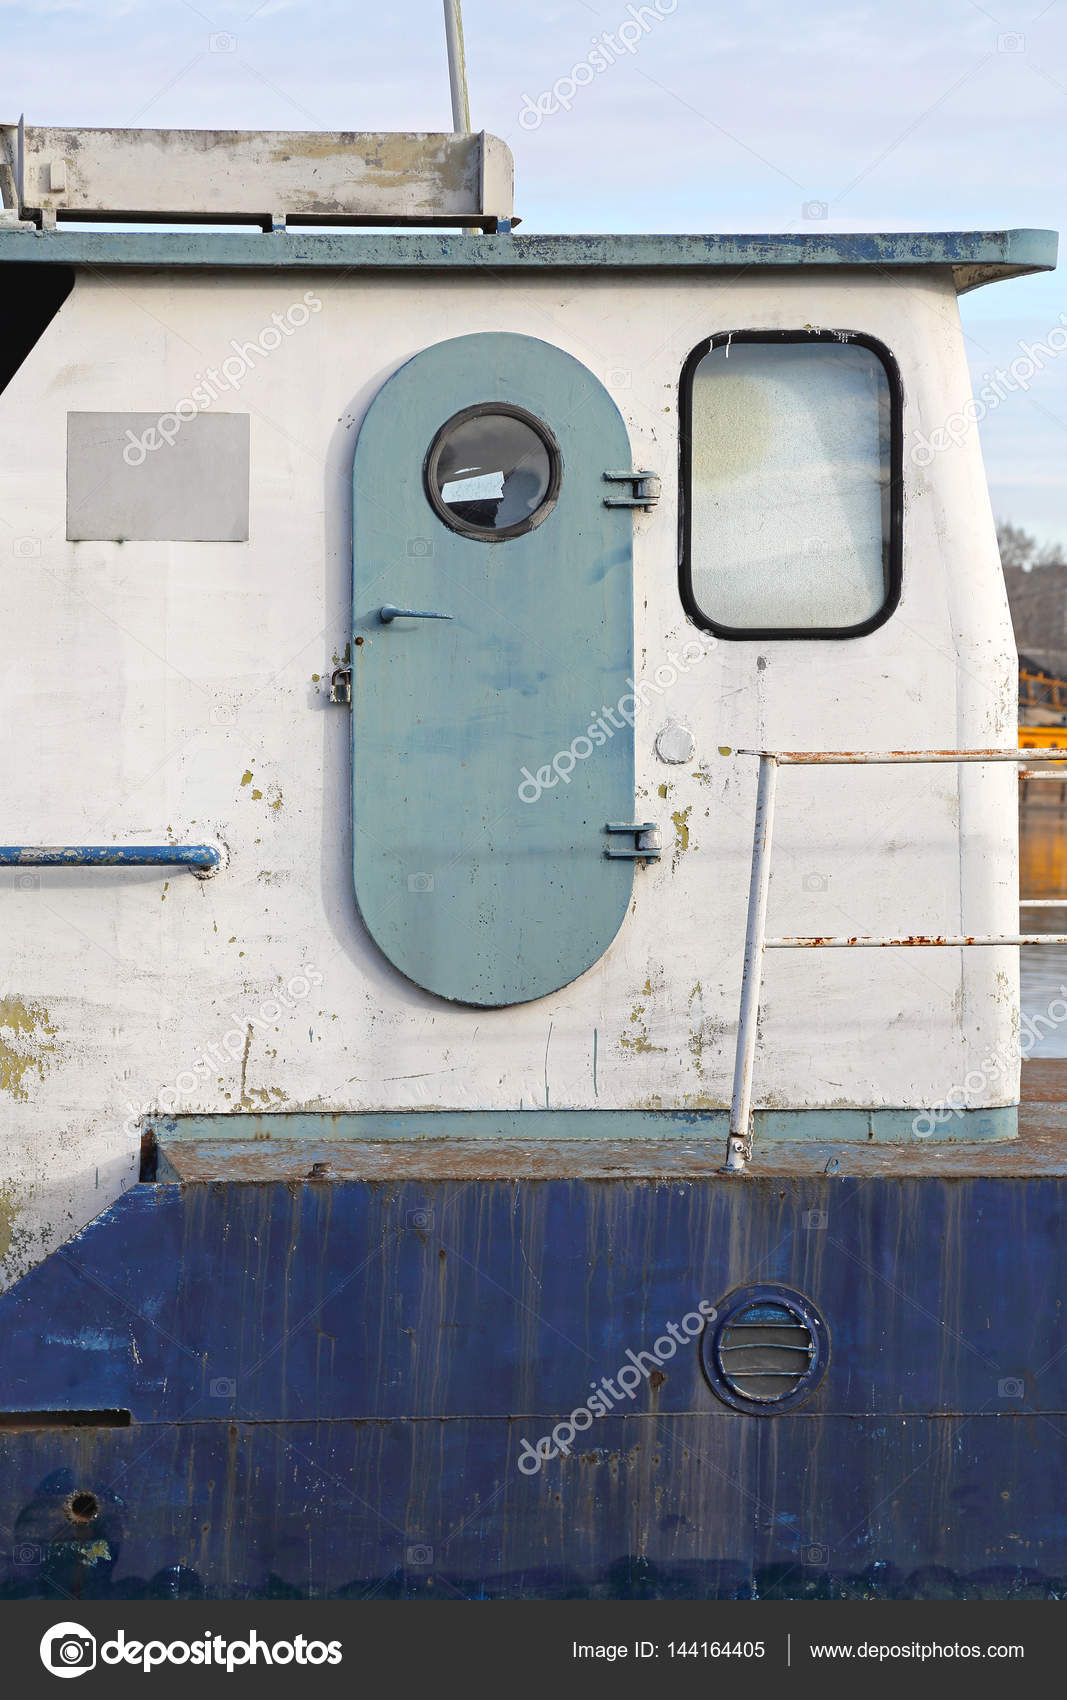 Watertight Ship Door u2014 Stock Photo & Watertight Ship Door u2014 Stock Photo © Baloncici #144164405